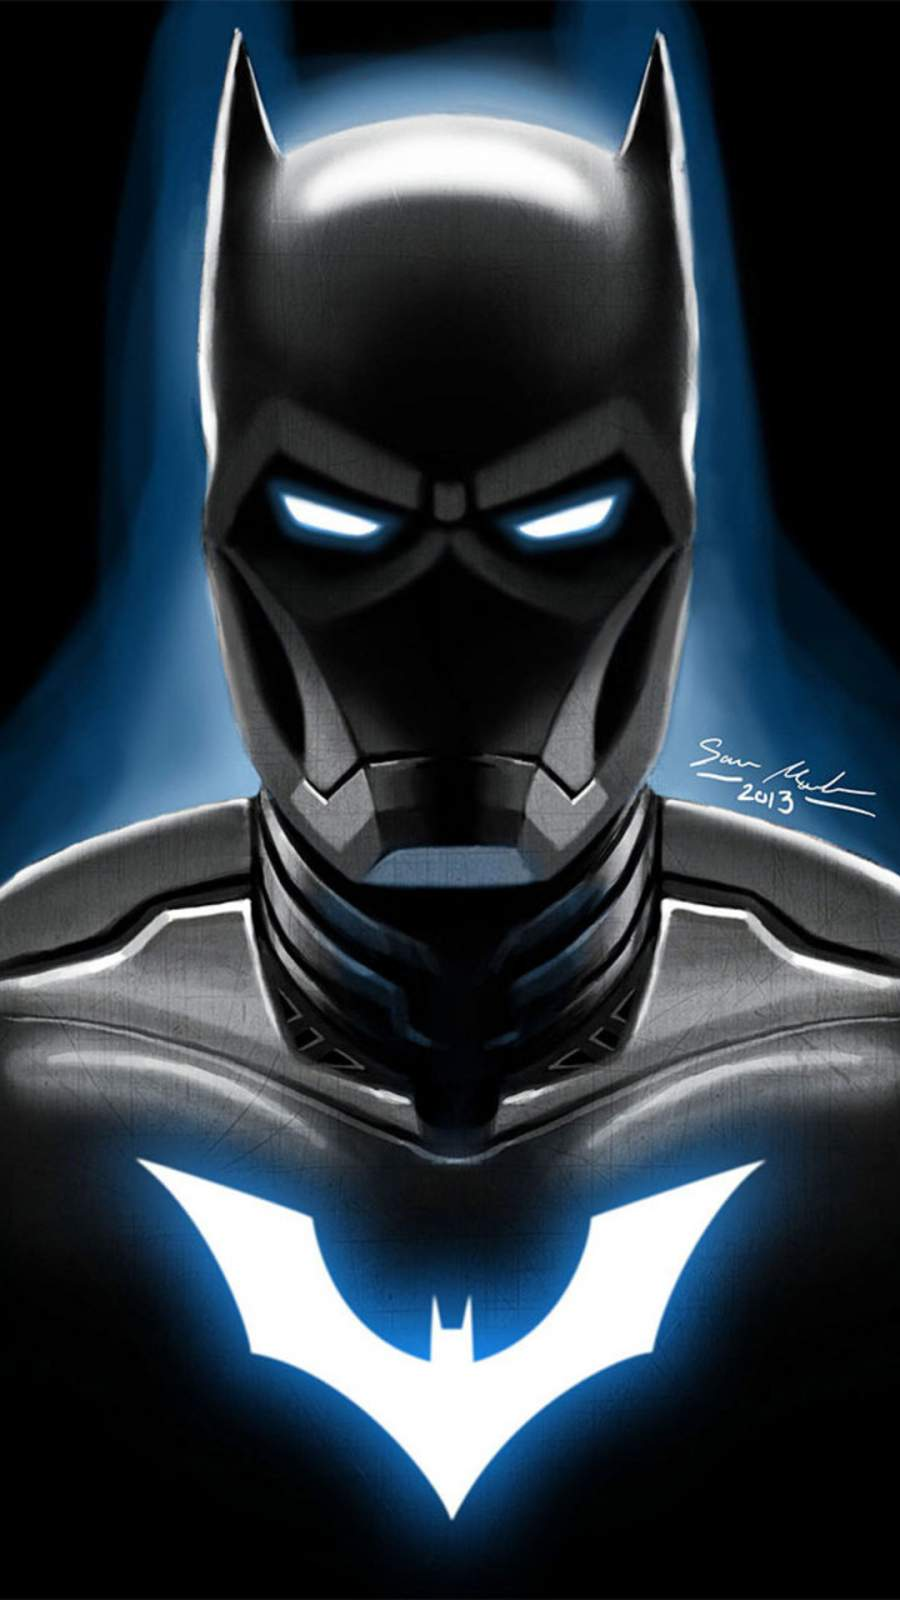 Iron Batman Artwork iPhone Wallpaper